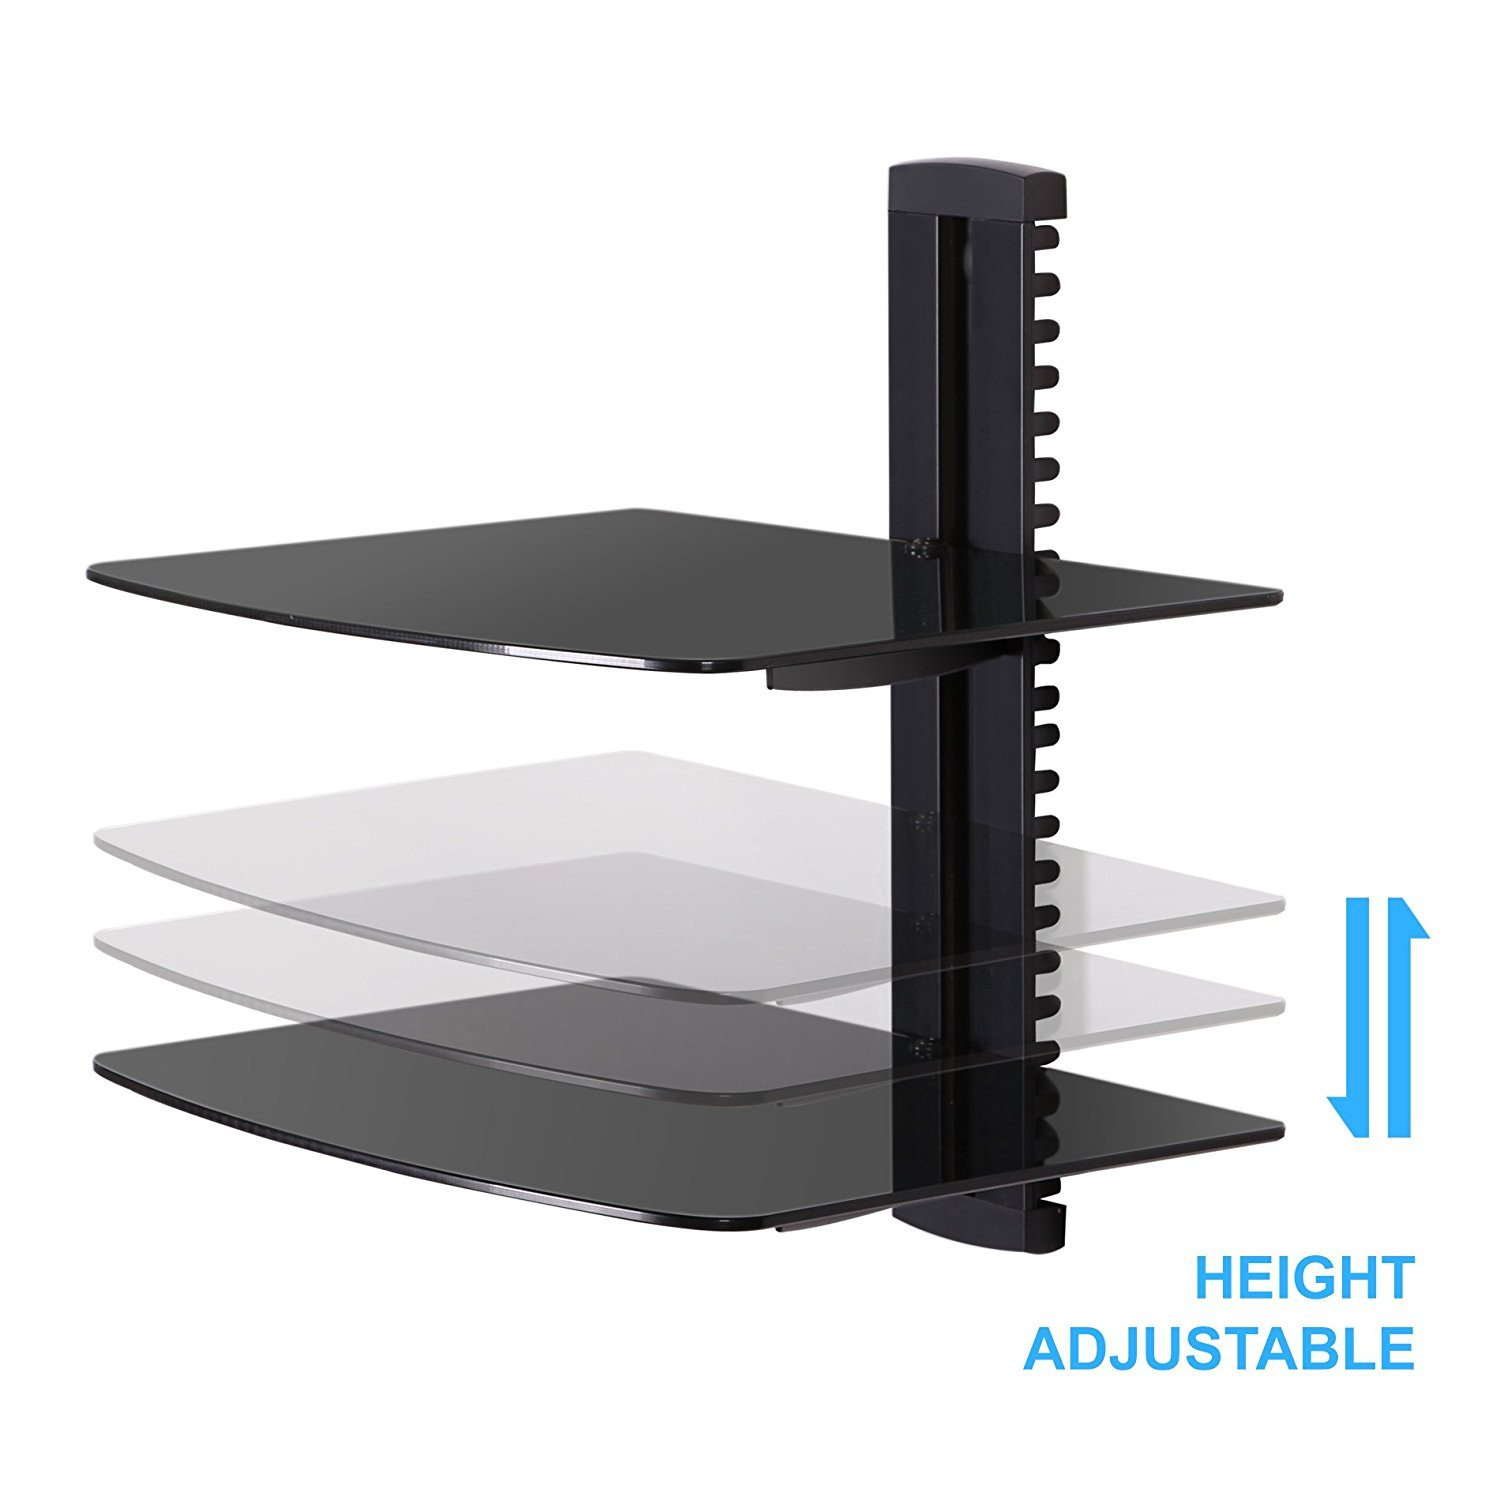 black tier adjustable wall mount glass floating dvd component bracket stand shelf fitueyes tempered tiers shelves for players blu ray receiver garage cupboards systems homebase